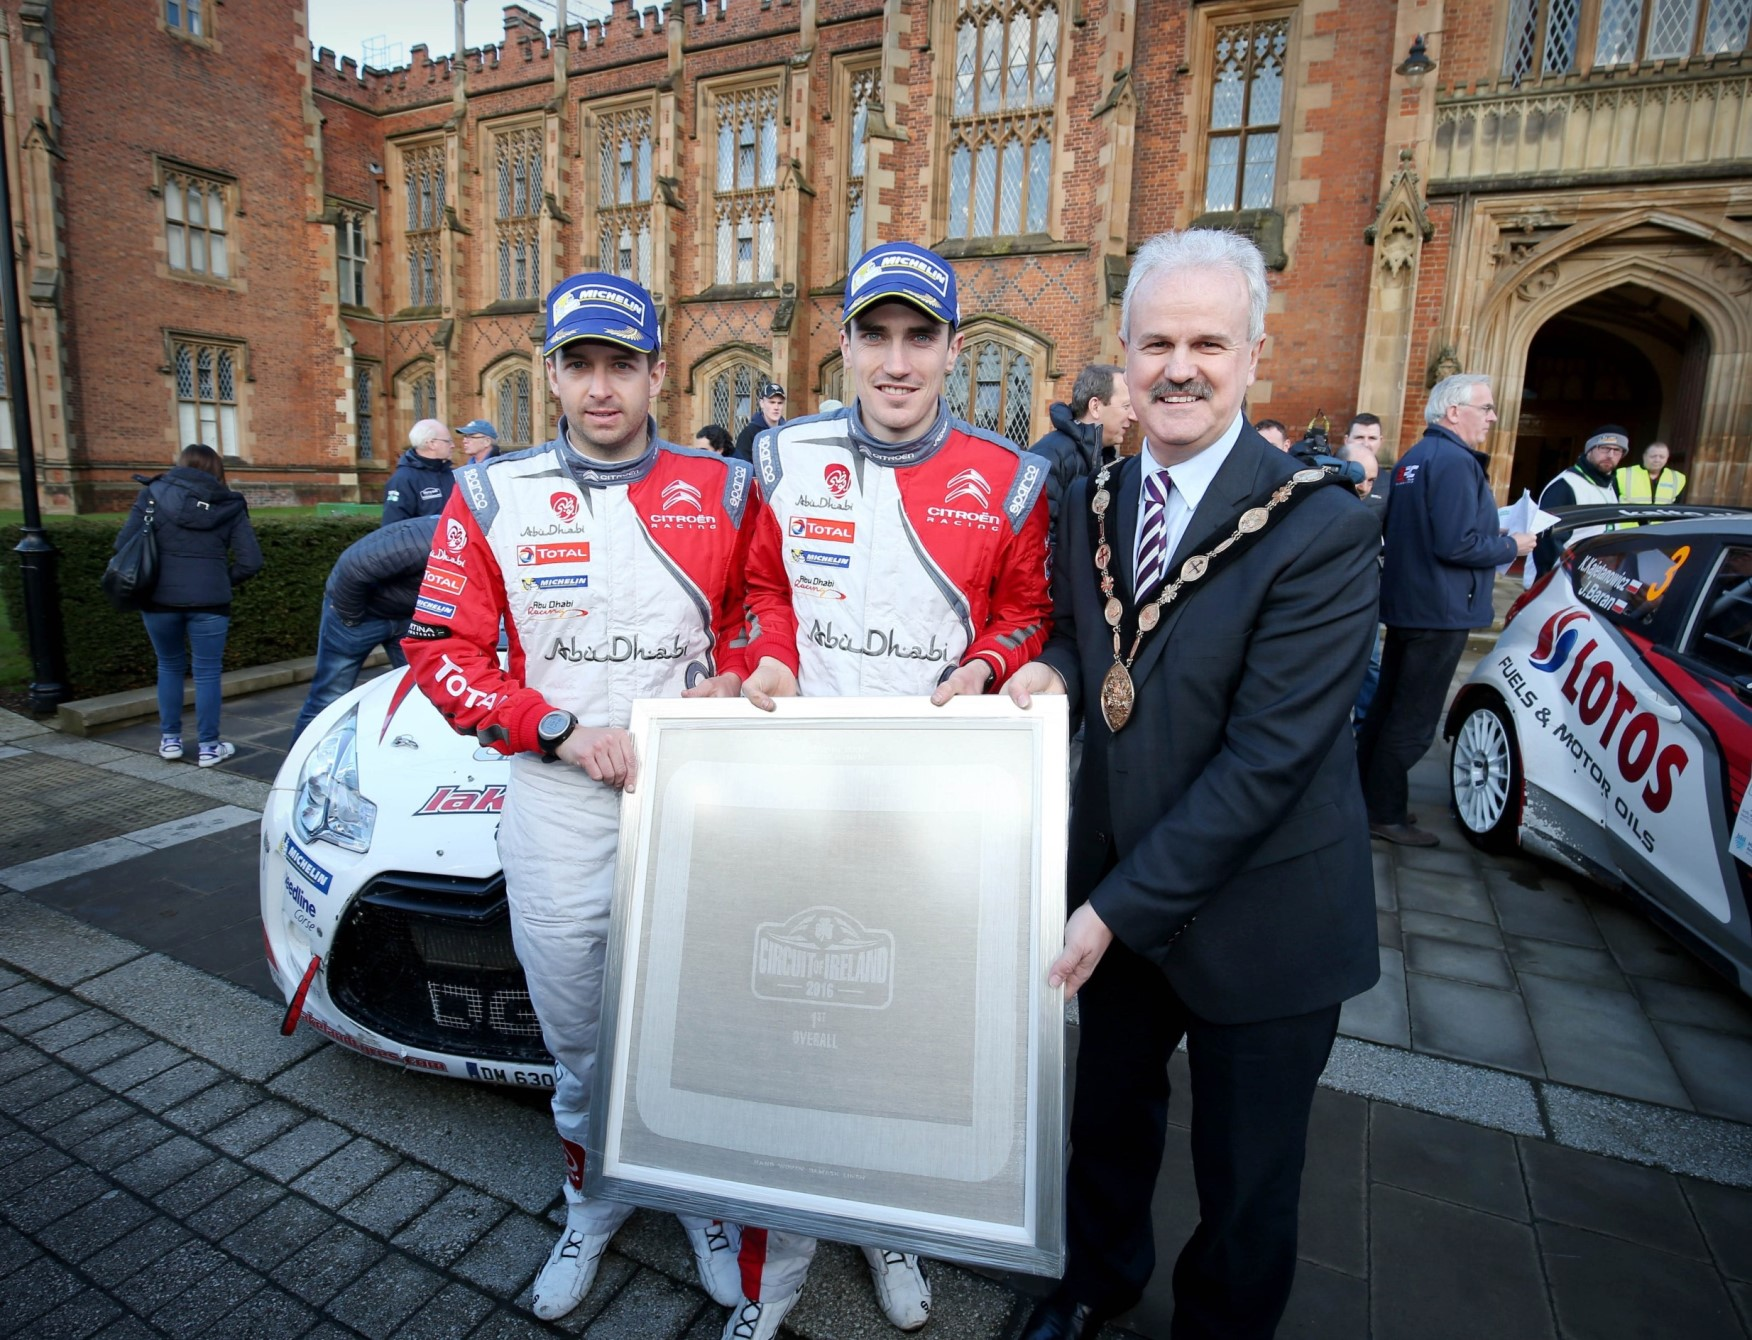 Historic 'Linen' prize for Circuit winners – presented by Lisburn & Castlereagh Mayor Mayor of Lisburn & Castlereagh, Councillor Thomas Beckett presents Craig Breen (centre) from Waterford and his co-driver Scott Martin, winners of this year's Circuit of Ireland International Rally with a very special and totally unique hand woven linen napkin marking the Circuit's historic 85th year. The Irish Linen Centre with Lisburn & Castlereagh City Council created the hand-finished bespoke napkins for the three top crews and the Mayor presented them during the closing ceremony at Queen's University showcasing the Lisburn region's historic linen industry. The high quality damask linen napkins feature a Circuit of Ireland pattern and were produced using a traditional hand loom by Lisburn Museum's specially trained hand weavers and designers.